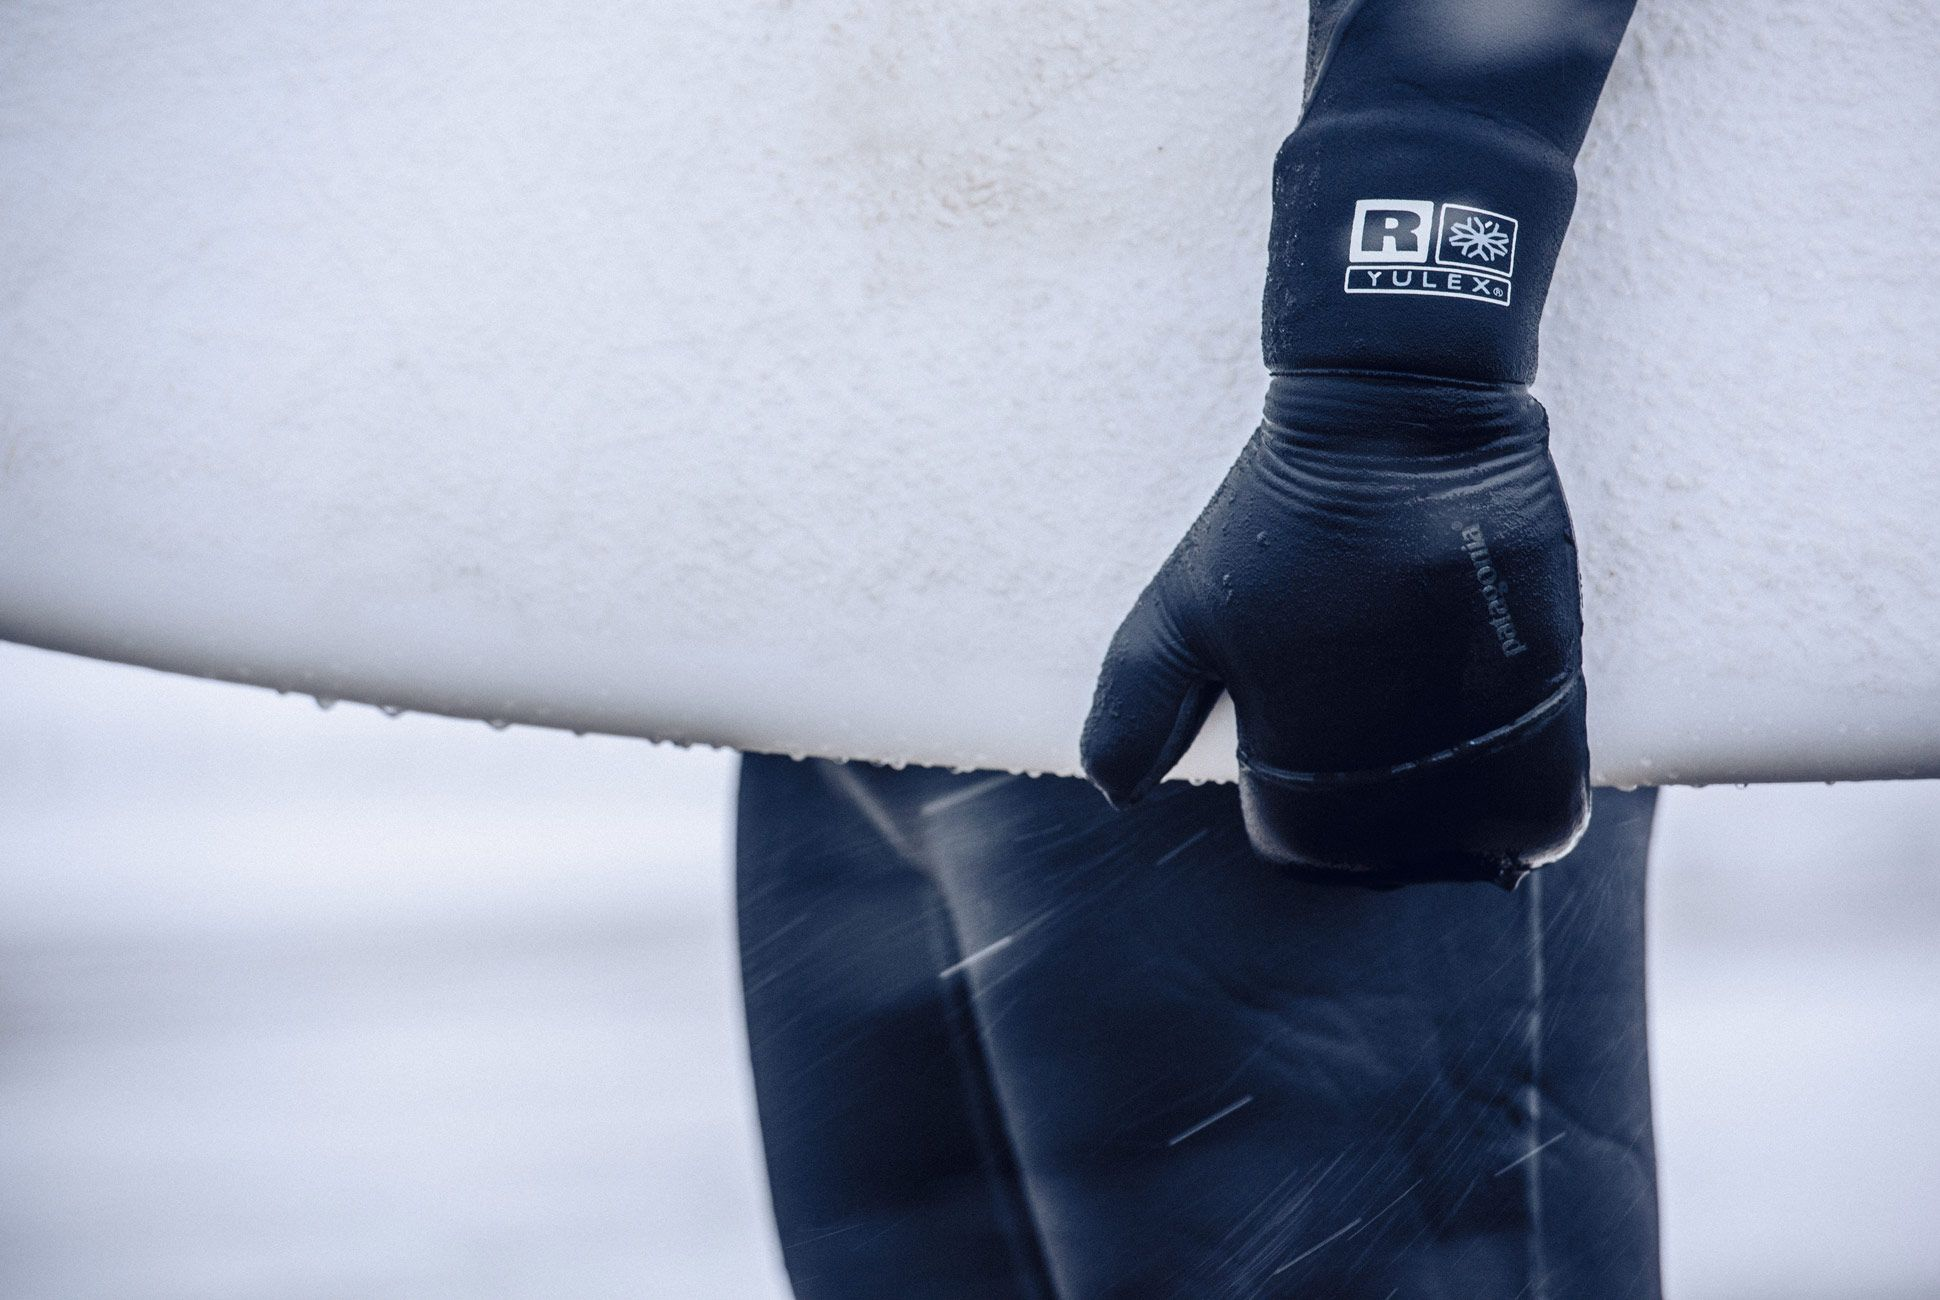 Winter-Surfing-Suit-AJ-Gear-Patrol-Slide-9